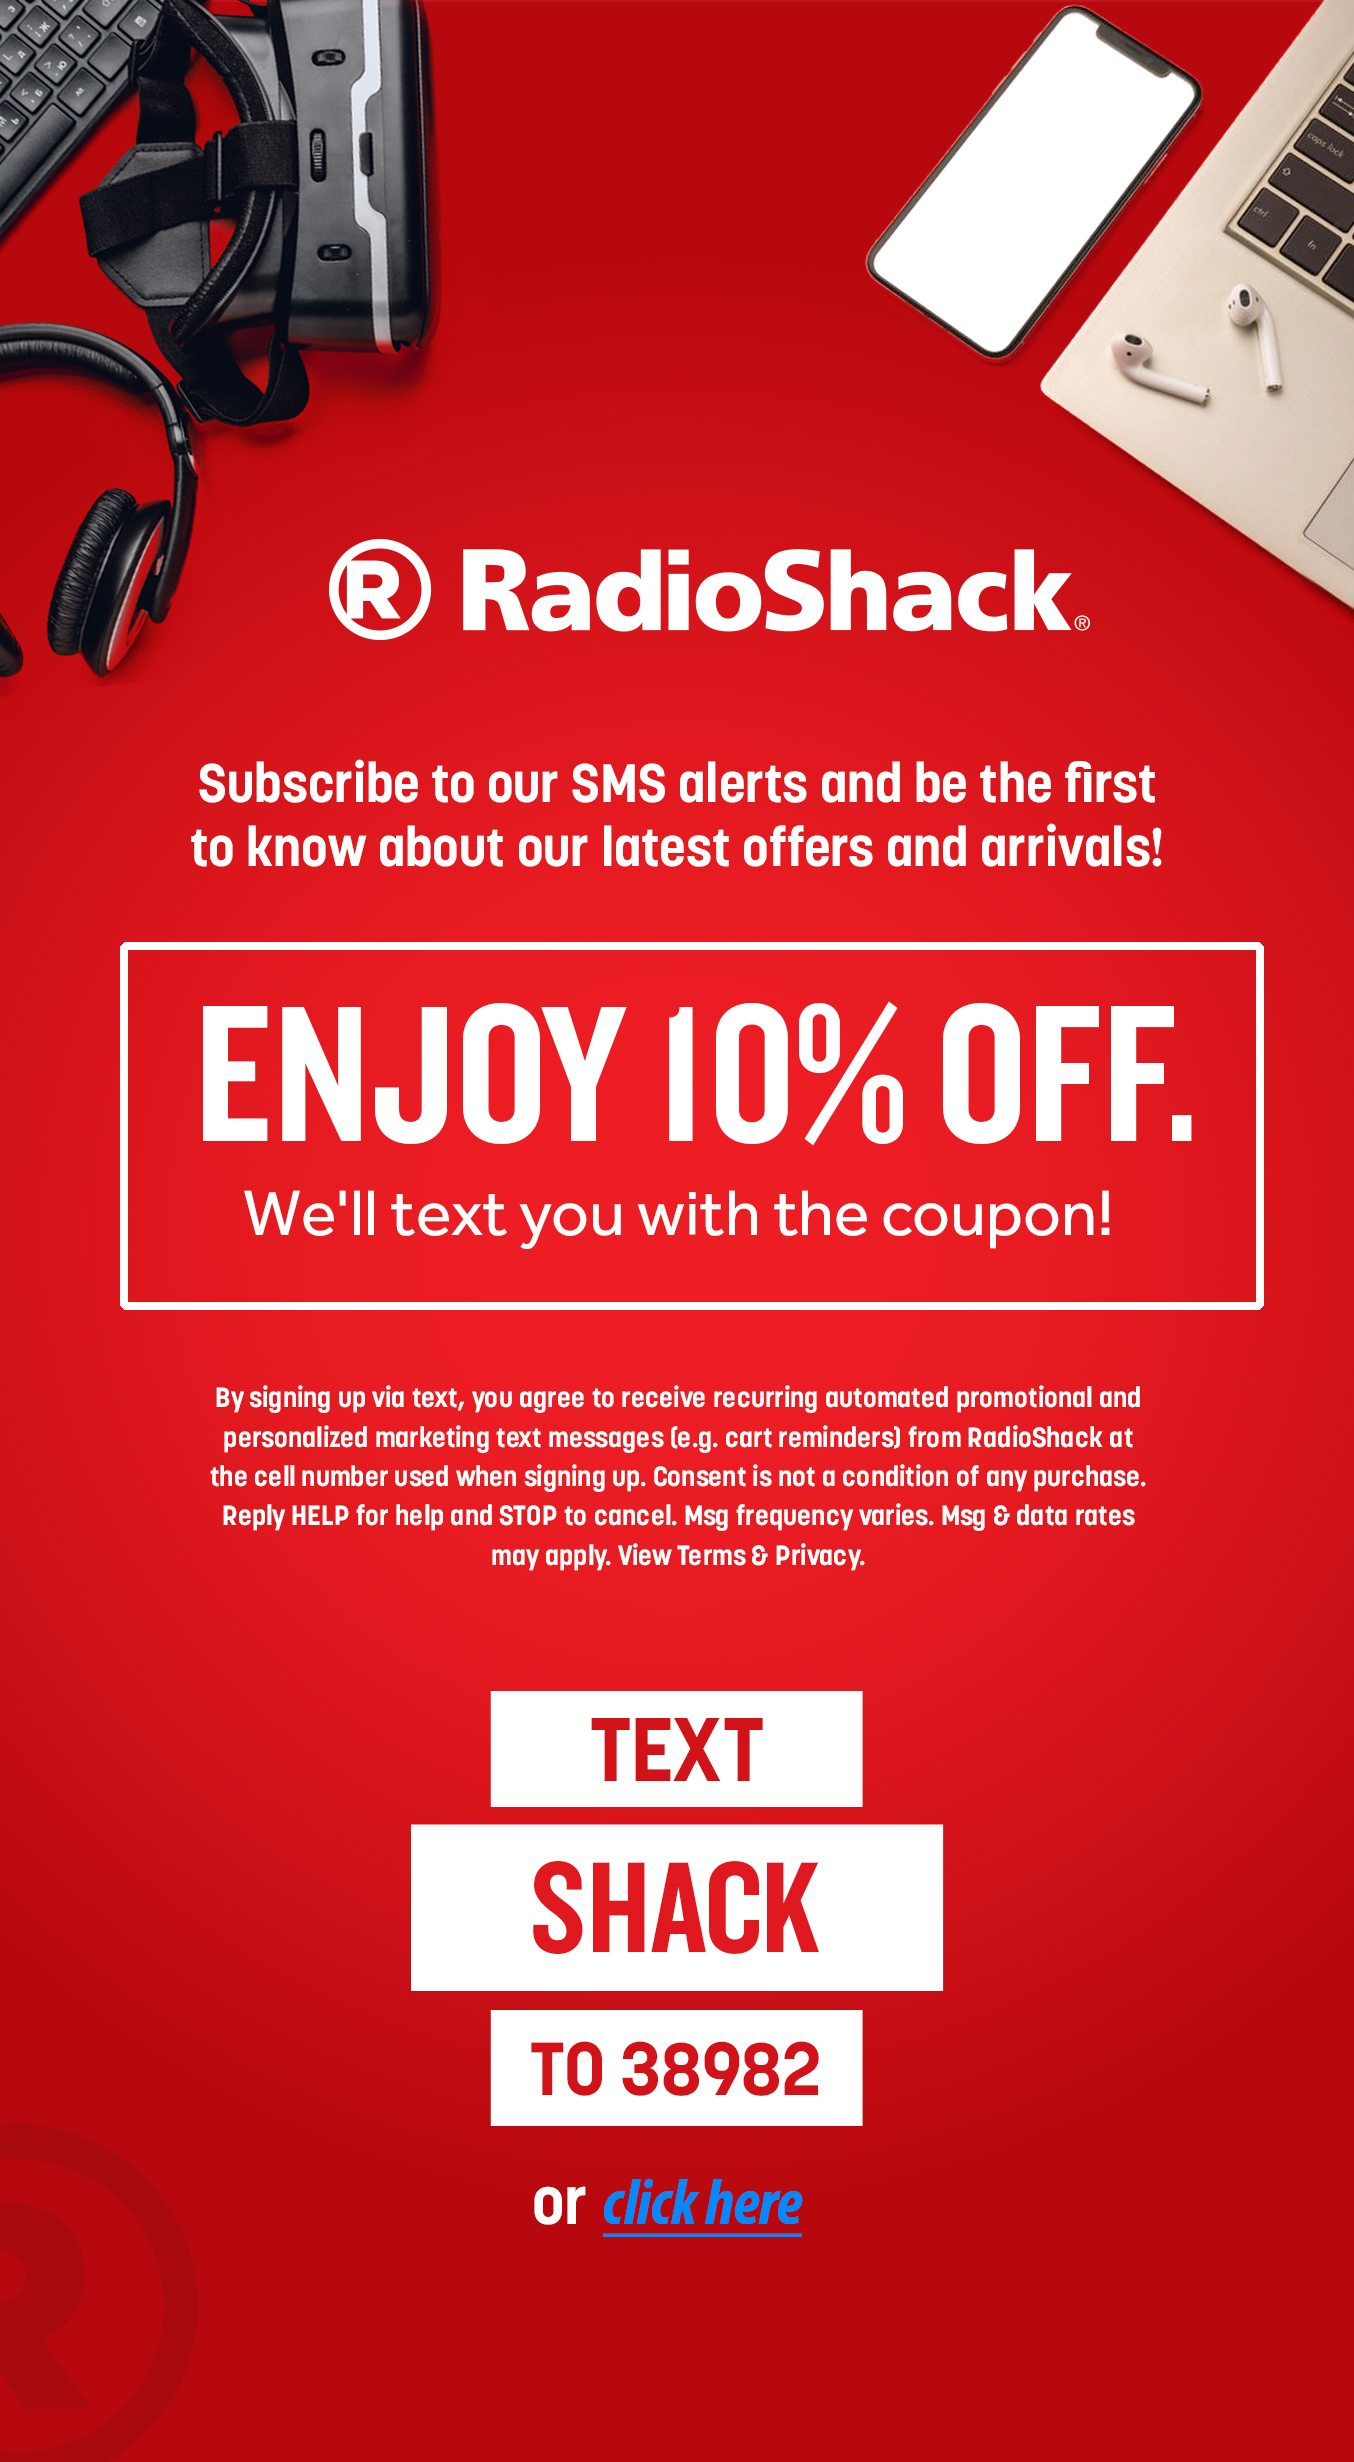 TEXT SHACK TO 38982